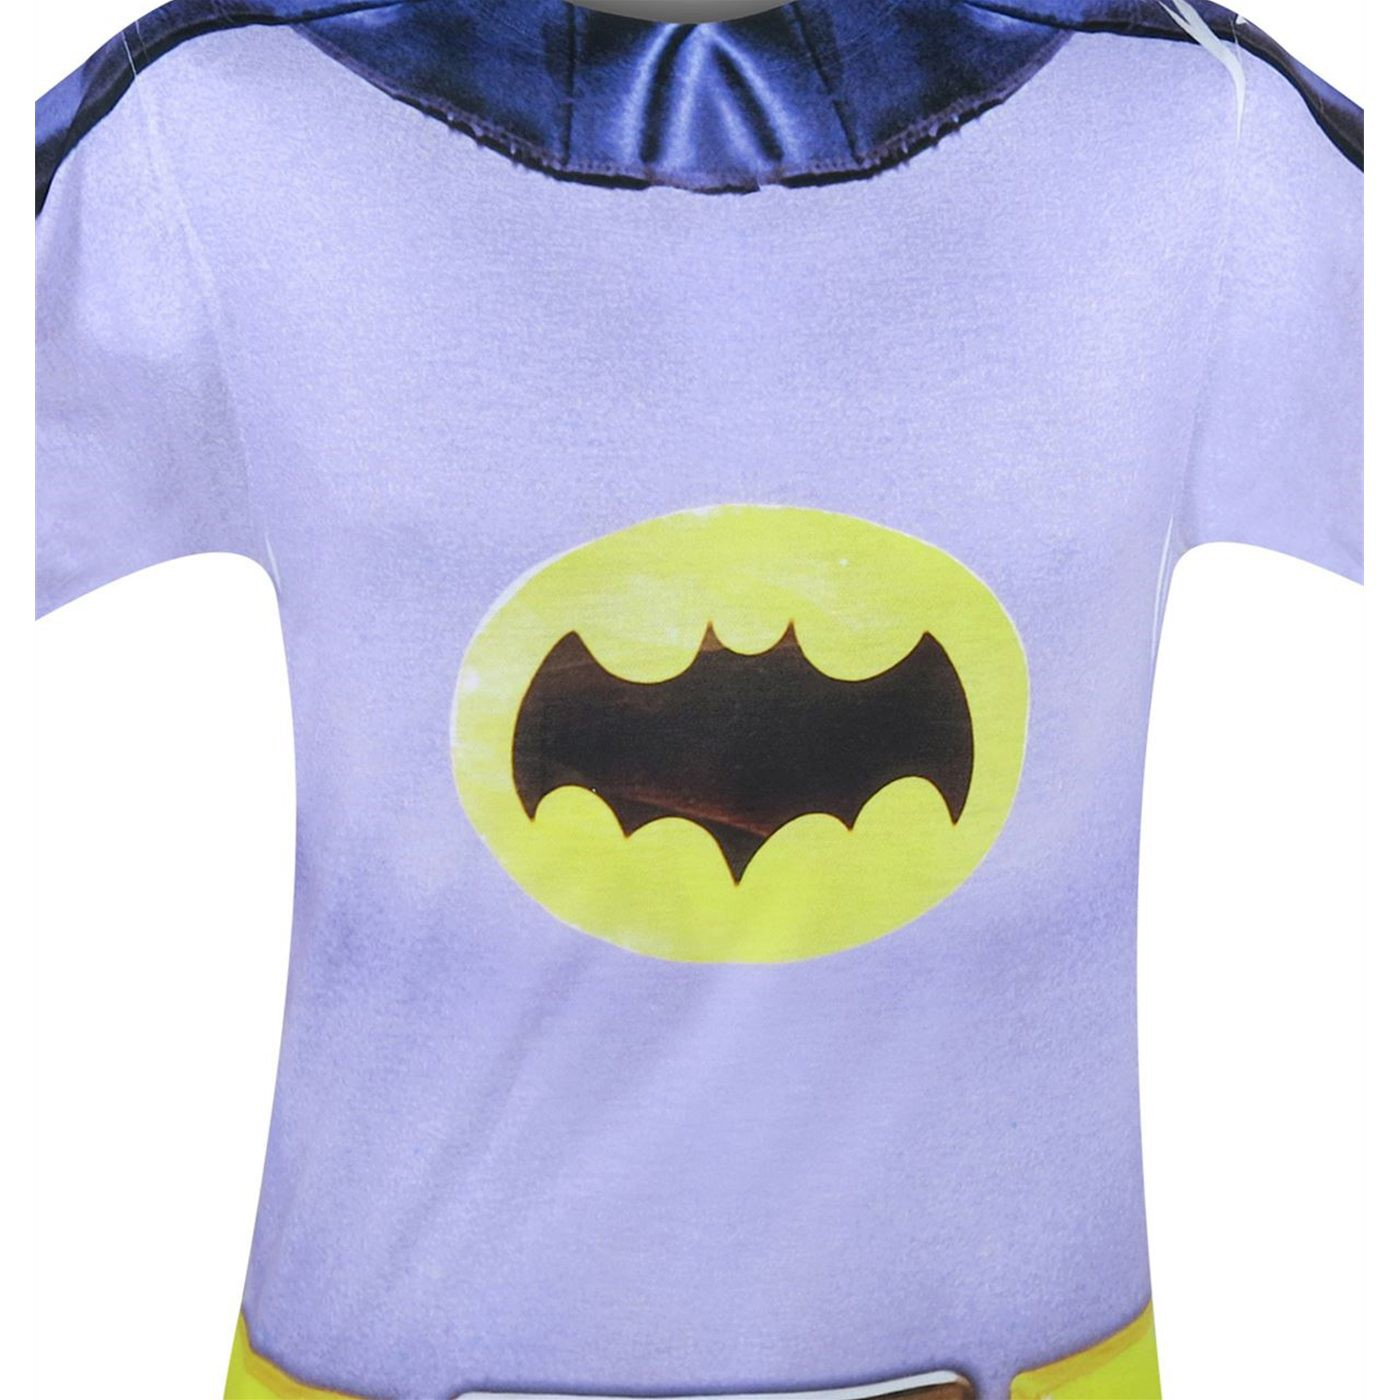 Adam West Batman Costume T-Shirt